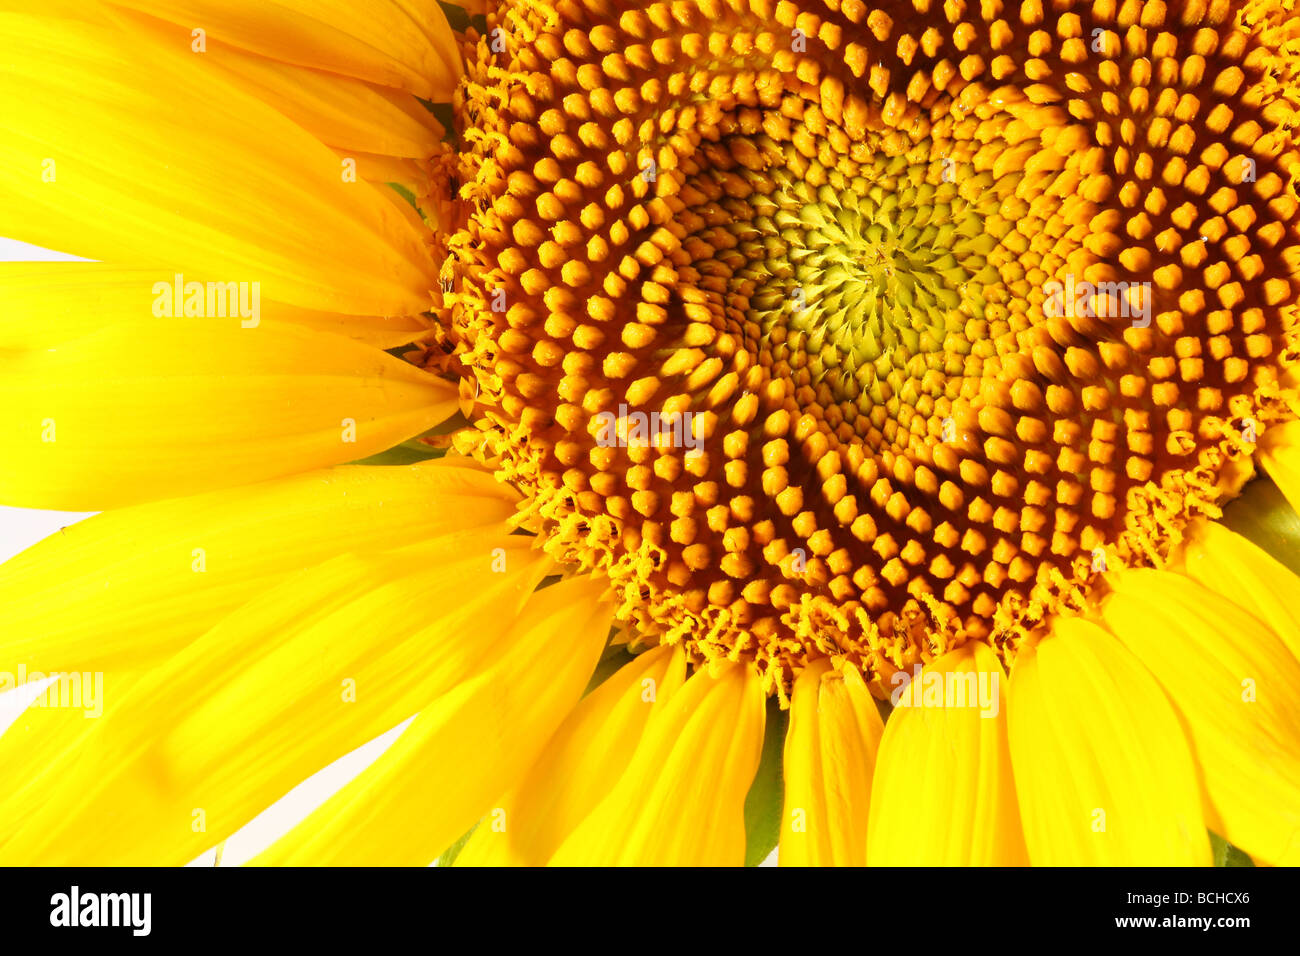 Étamines en forme de cœur sur un tournesol Photo Stock